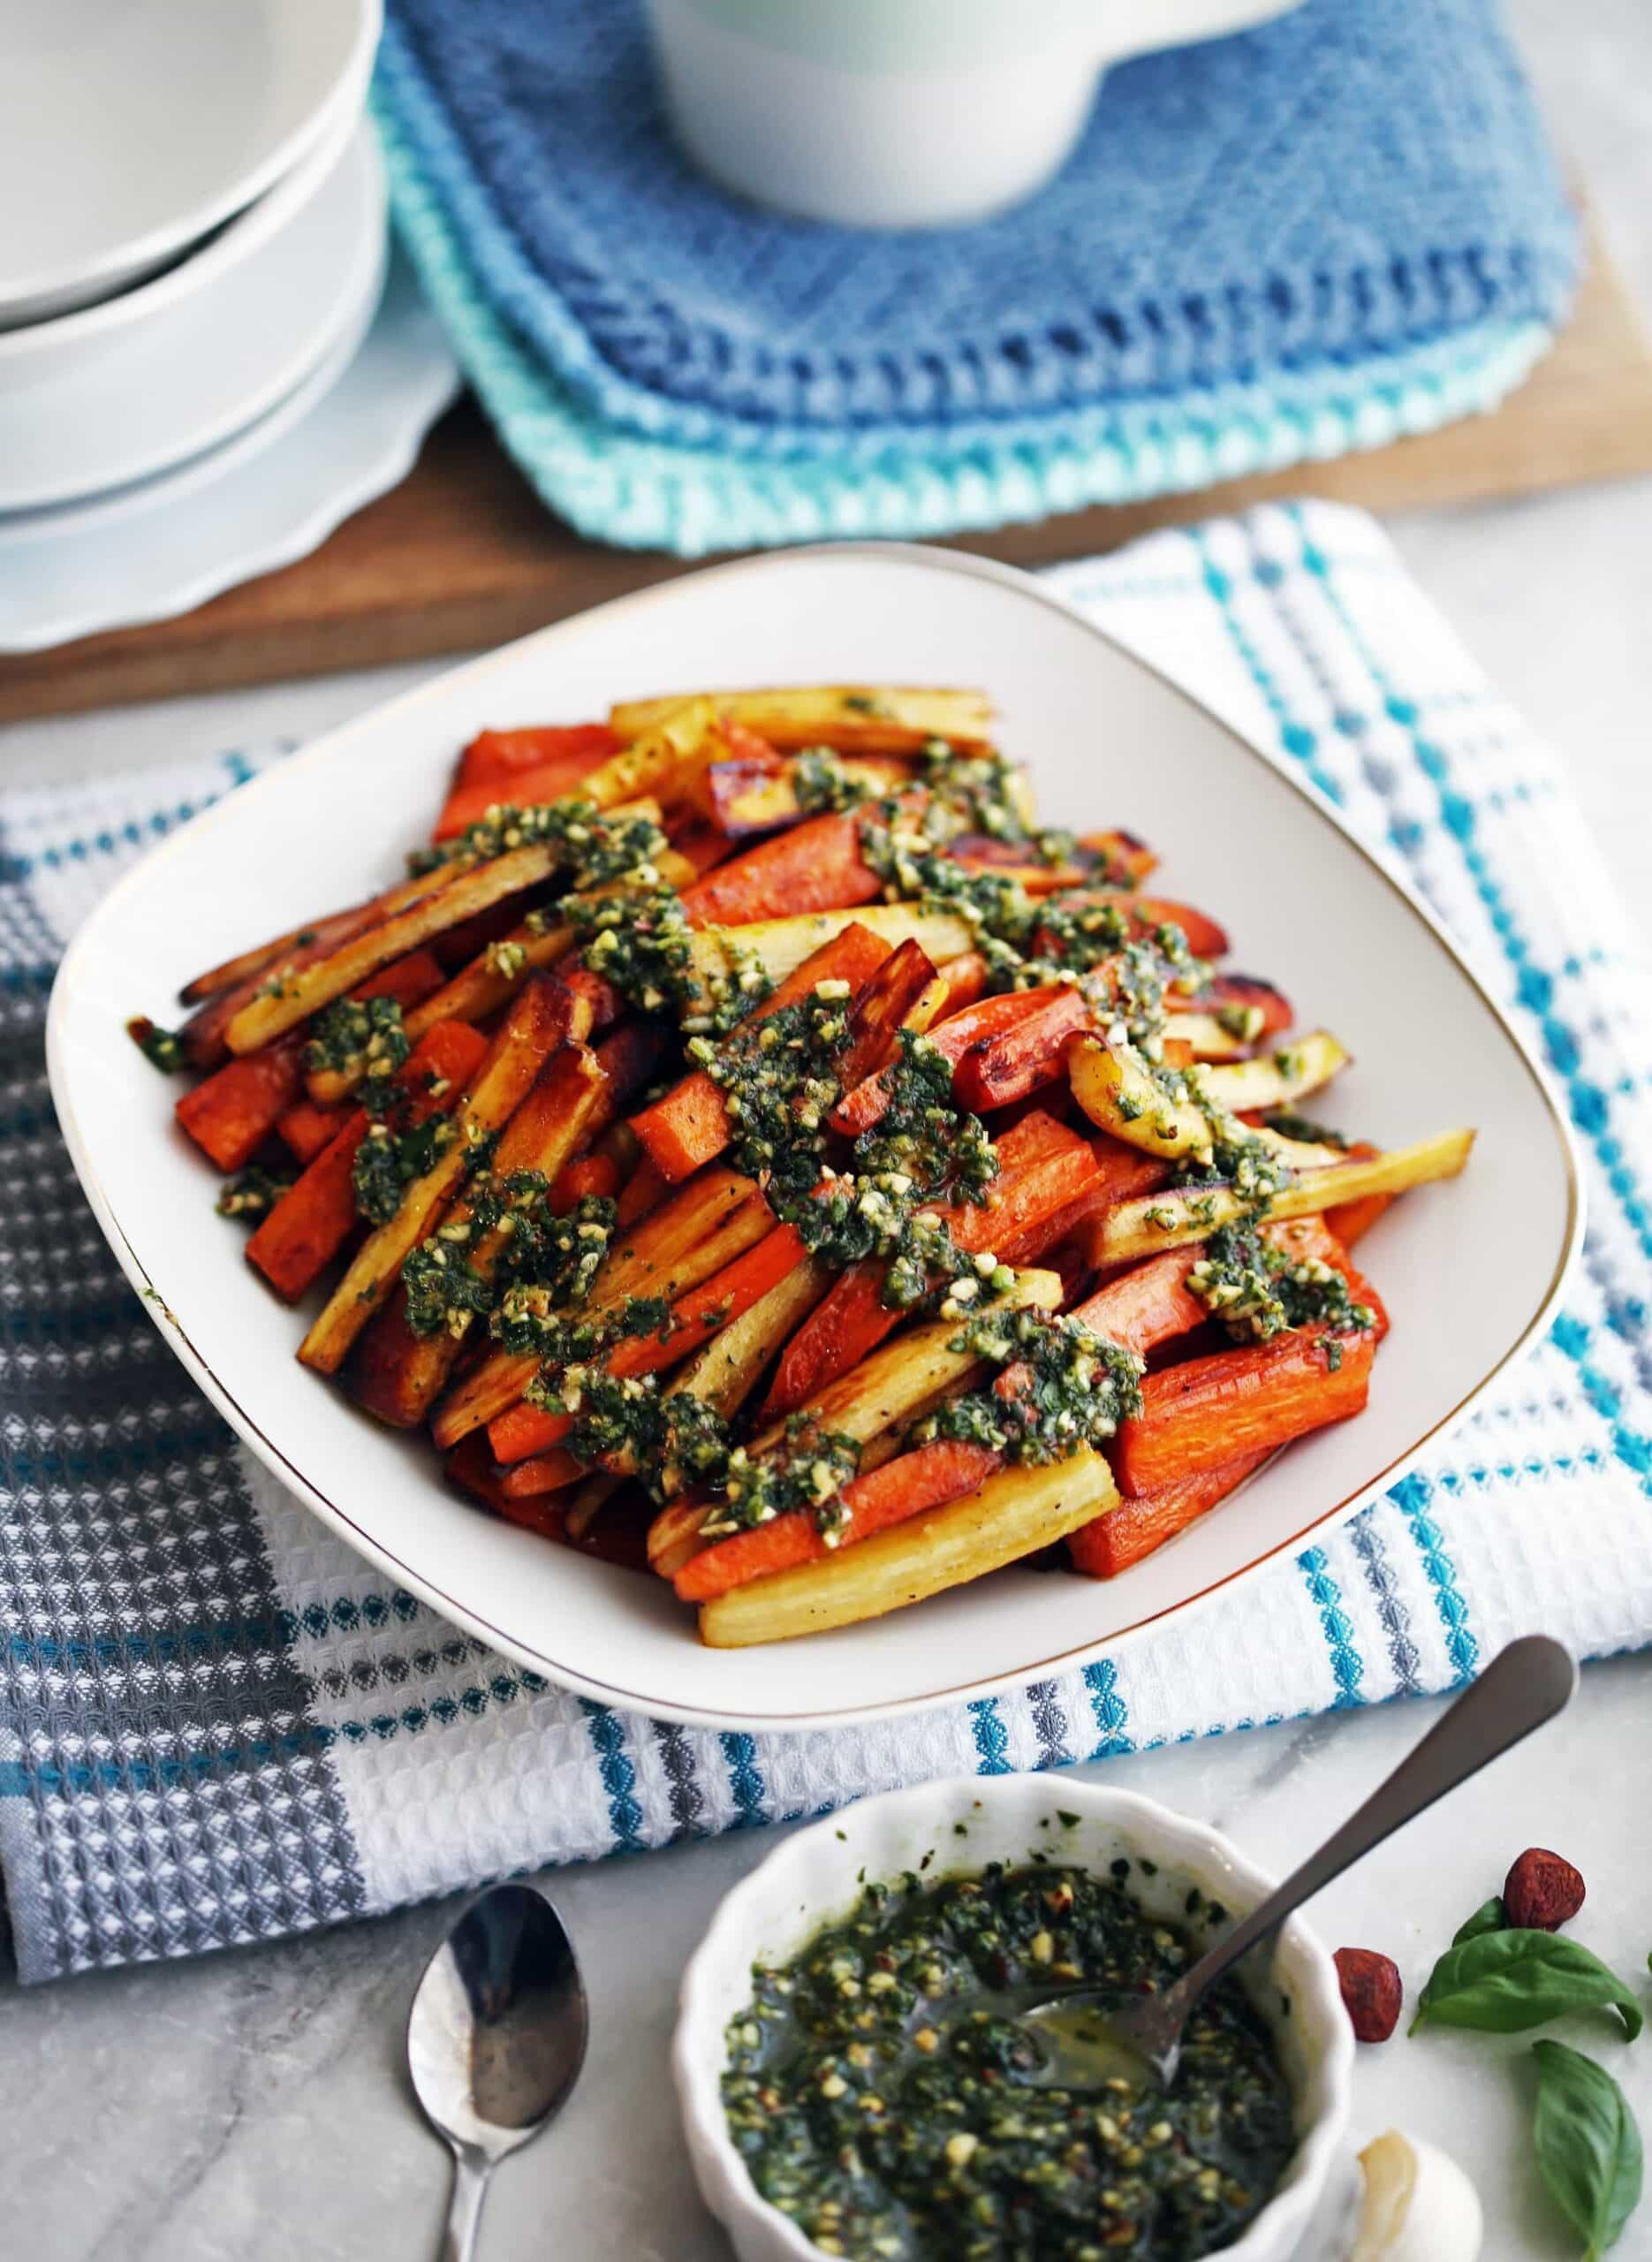 Roasted Balsamic Root Vegetables with Basil Almond Pesto